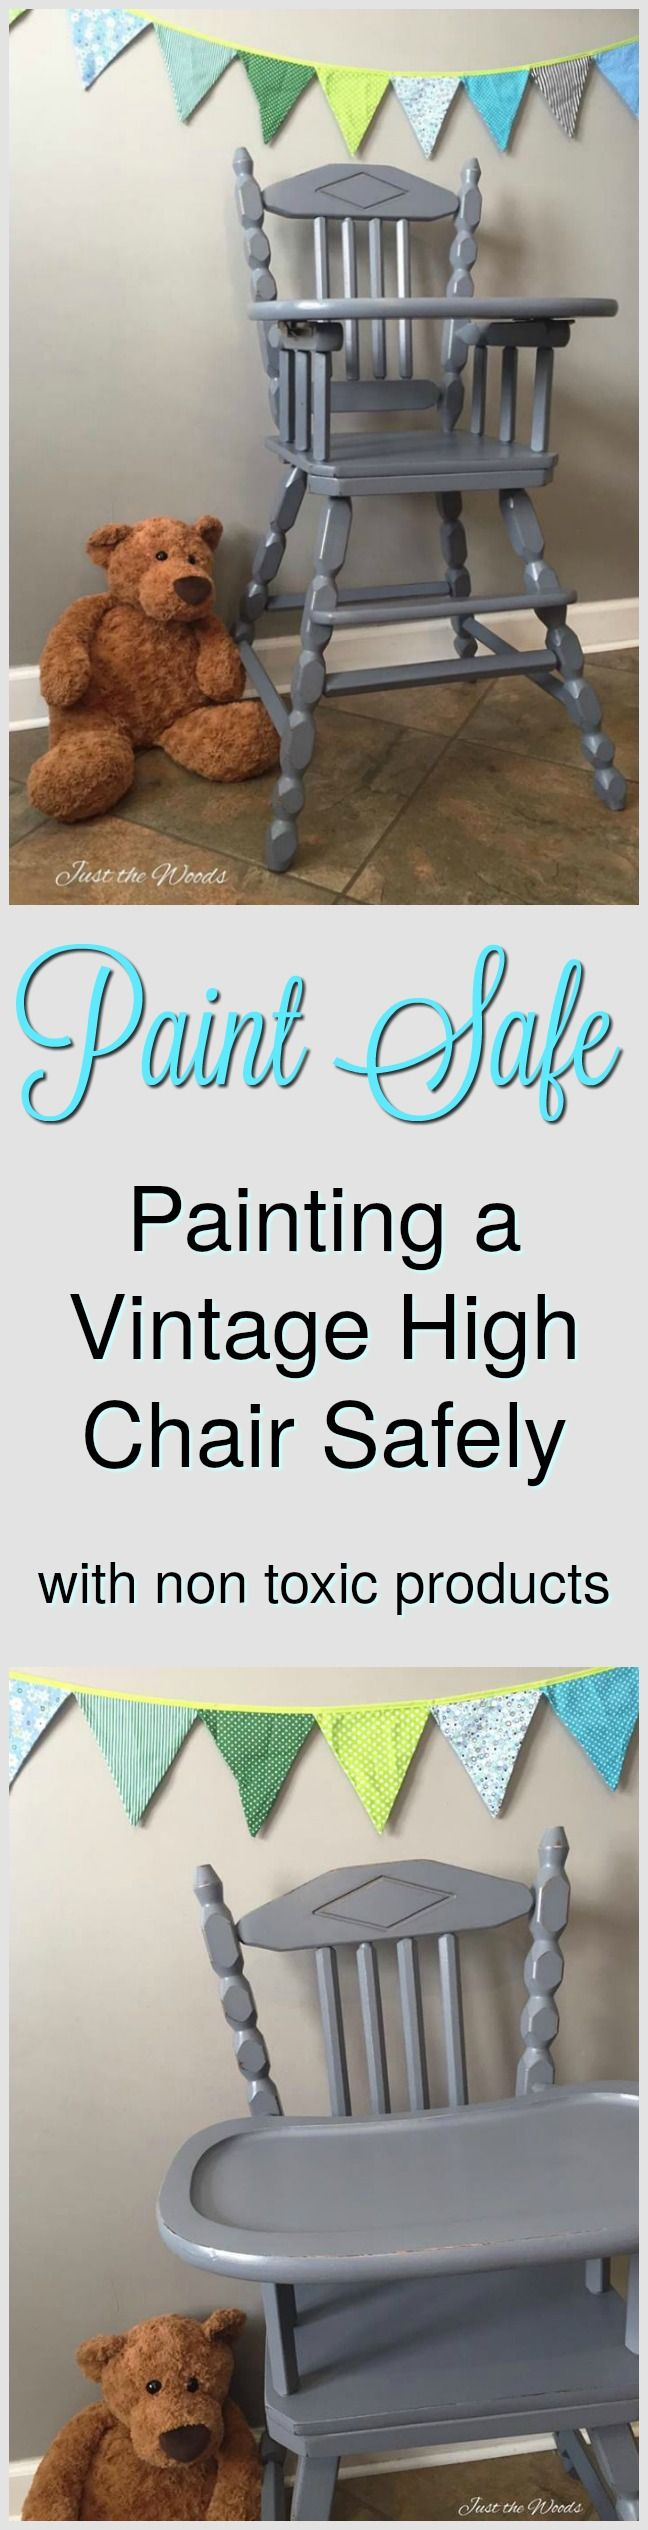 How to paint that old vintage high chair and not compromise safety! Paint safe with non toxic products. / painted high chair by Just the Woods